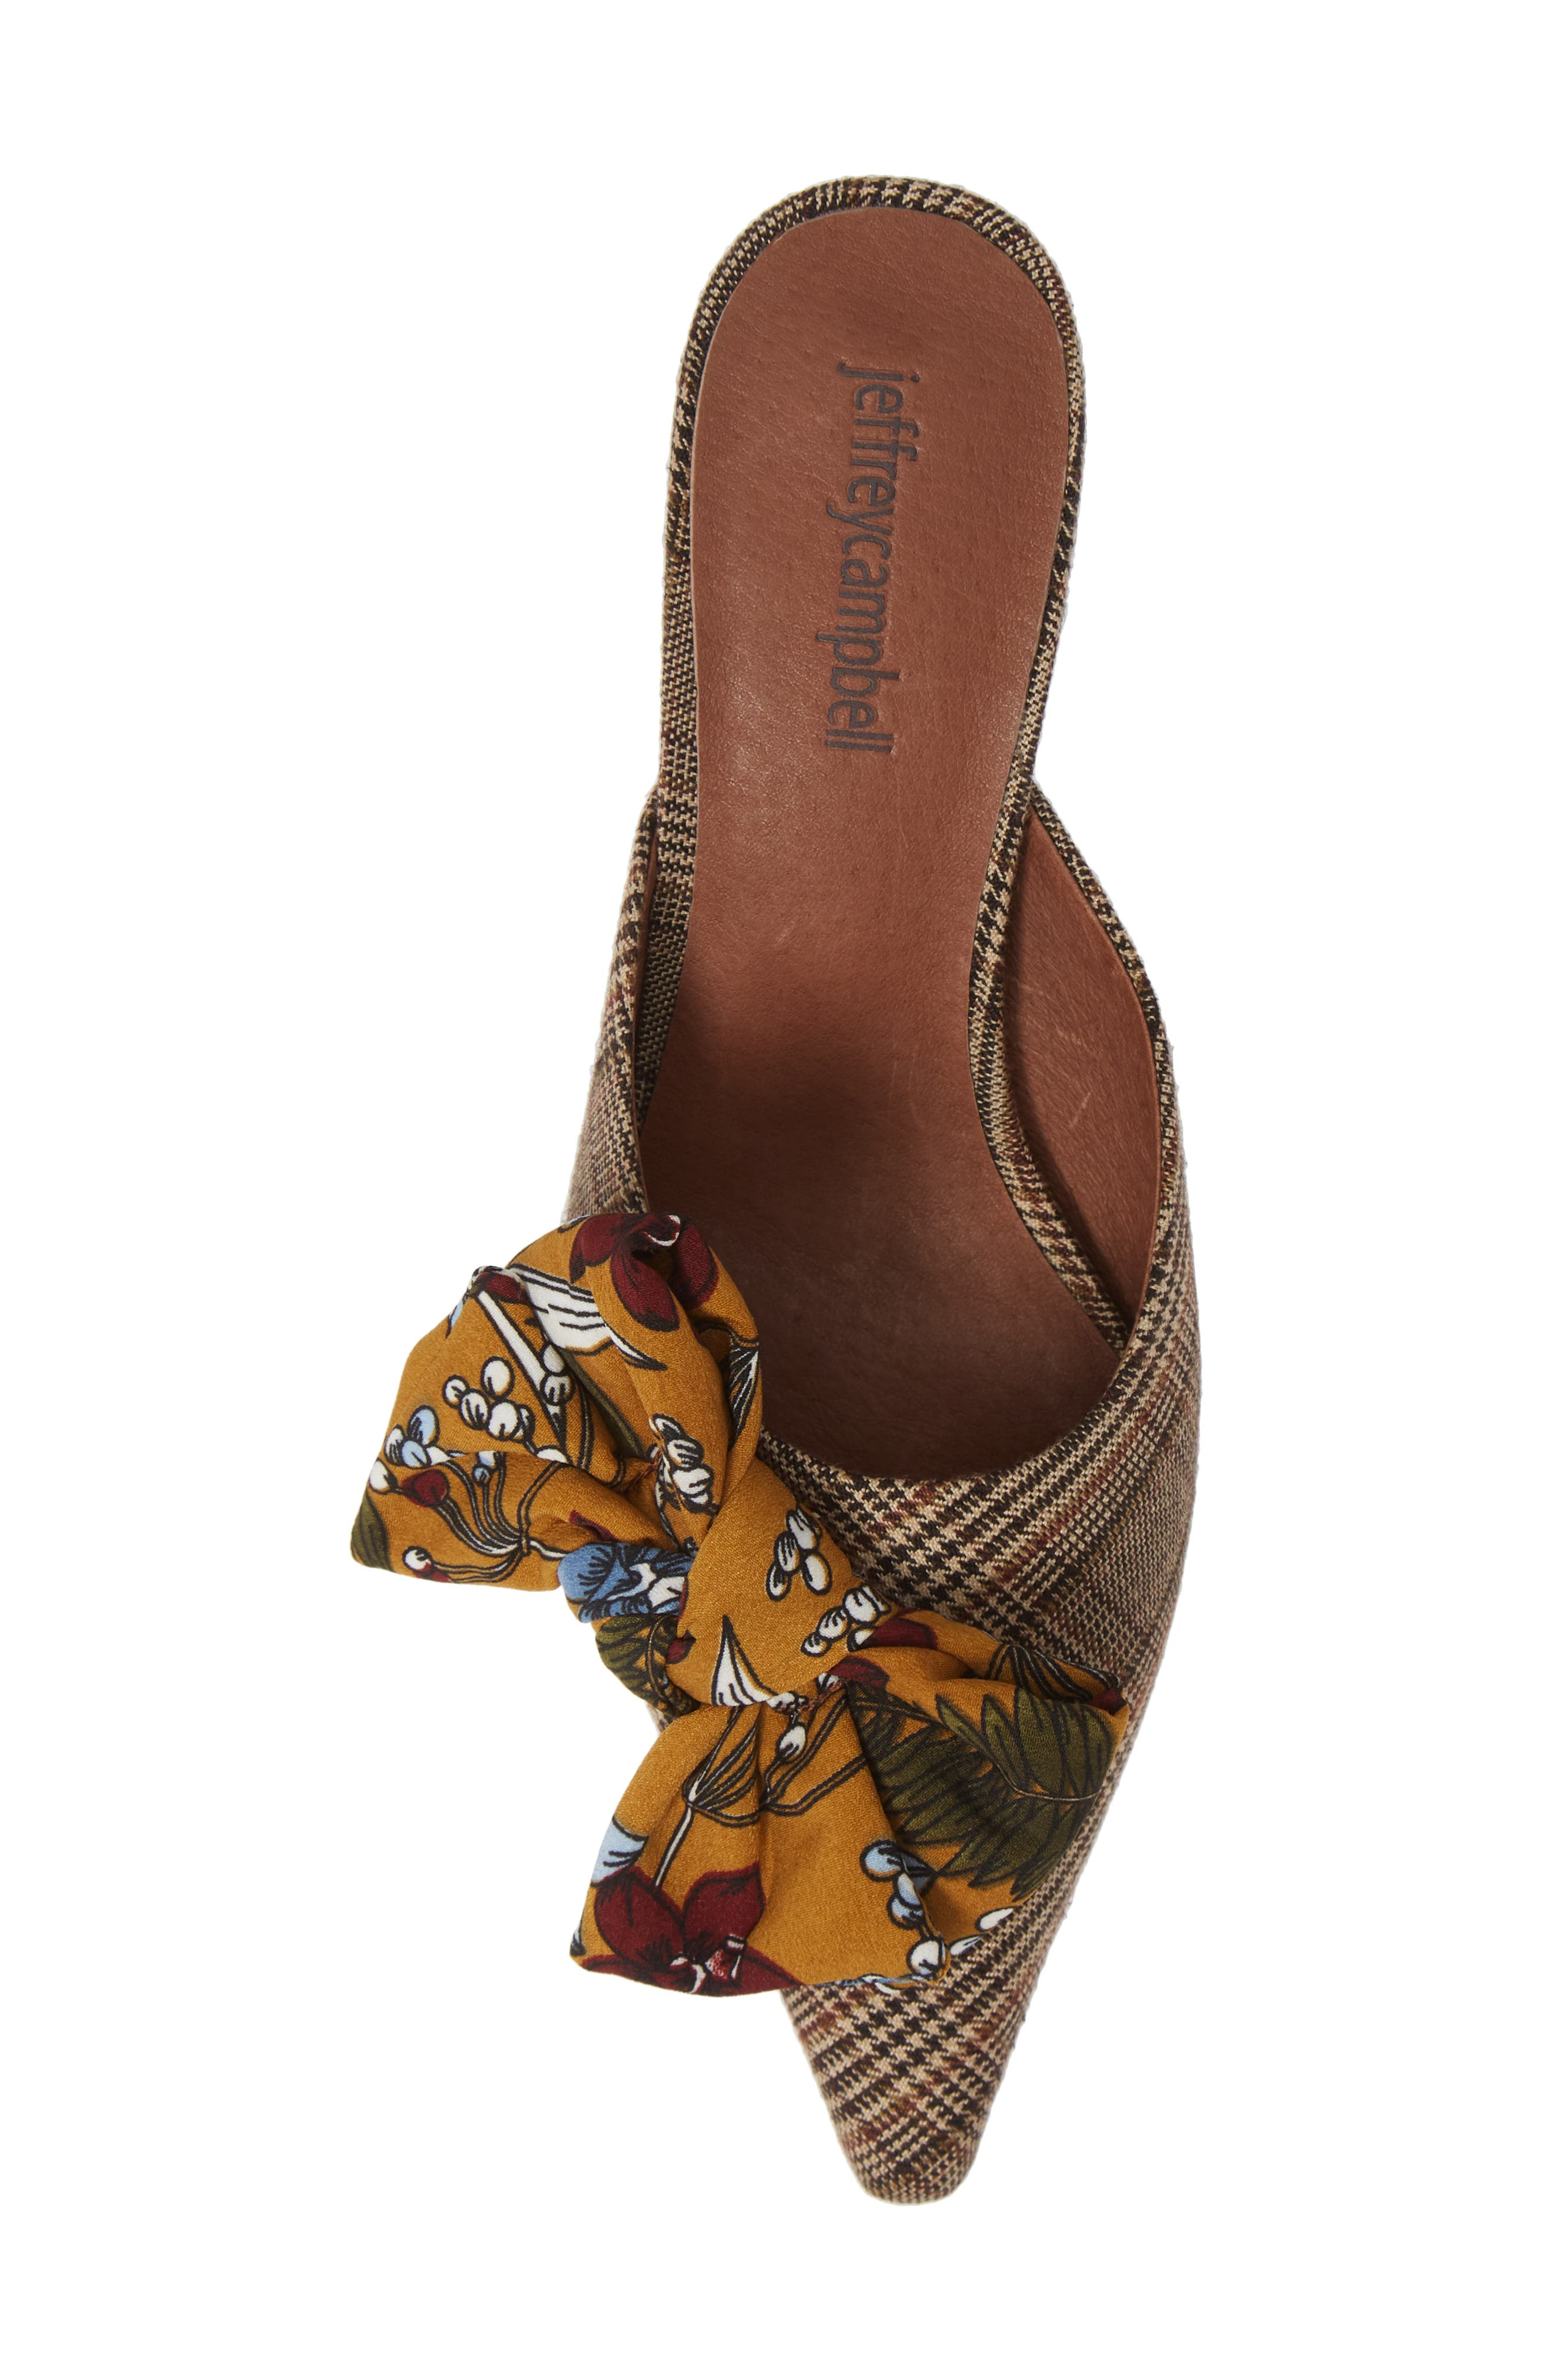 Adorn Pointy Toe Mule,                             Alternate thumbnail 5, color,                             MUSTARD/ NAVY FLORAL MULTI